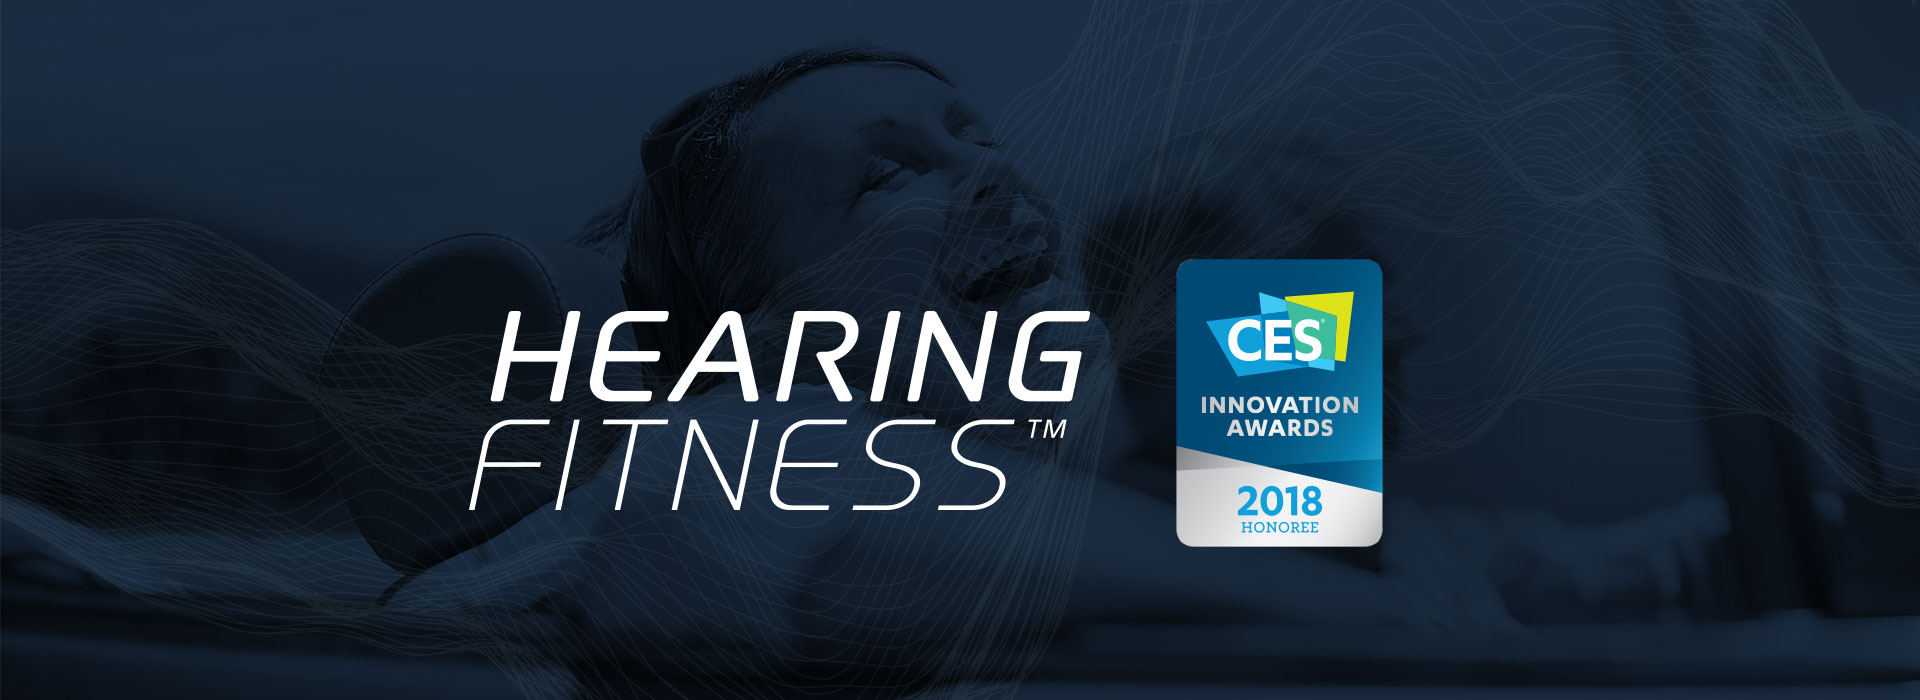 the-worlds-first-hearing-fitness-tracking-technology